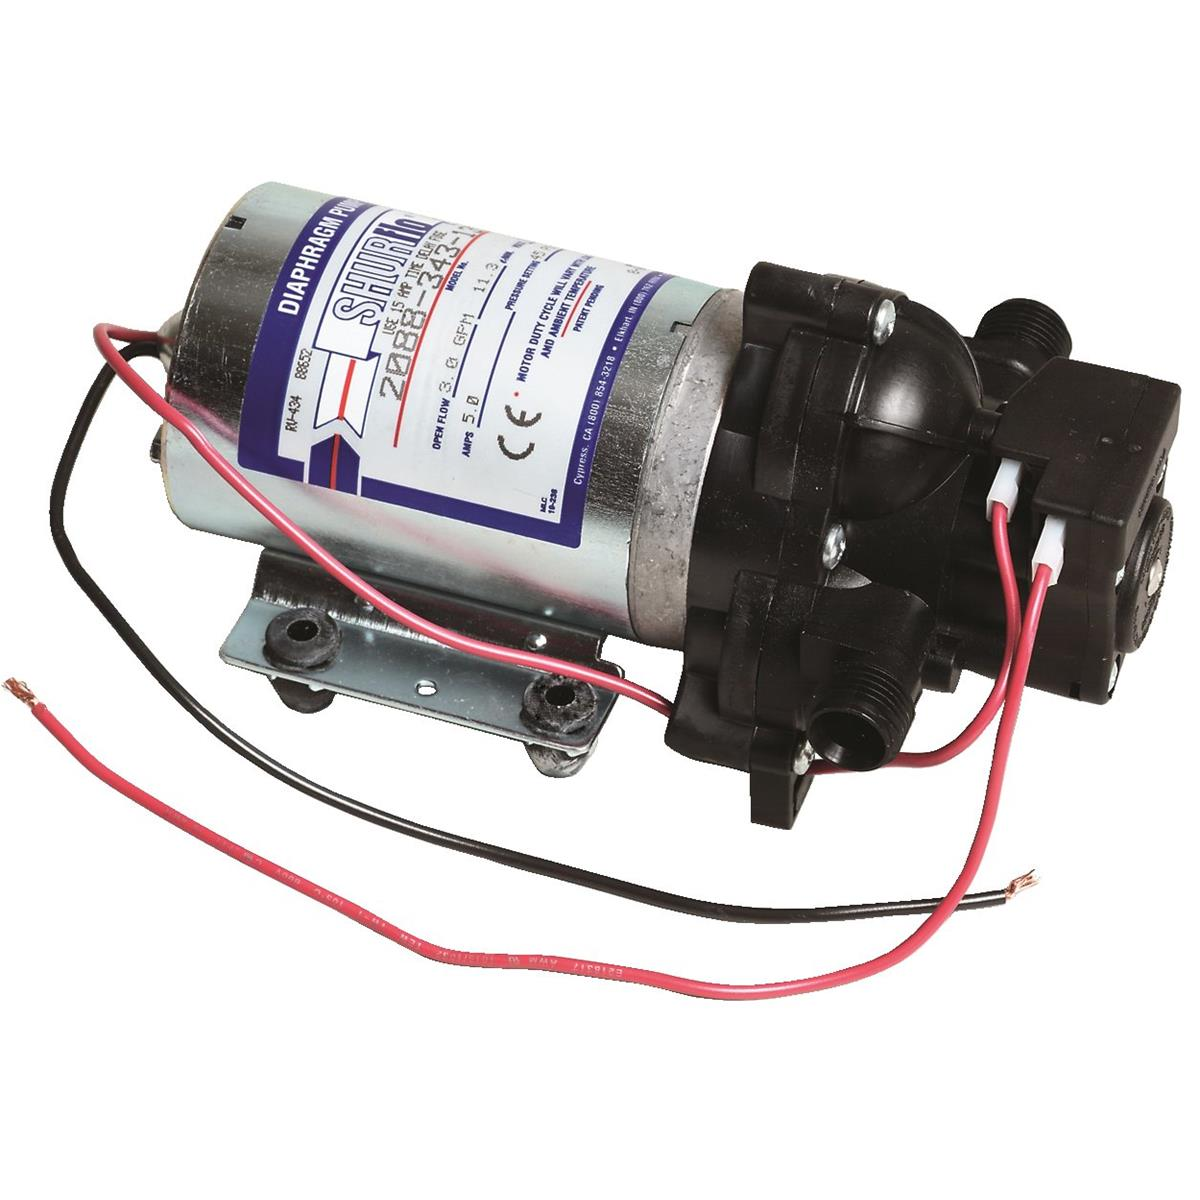 Shurflo Diaphragm Pump